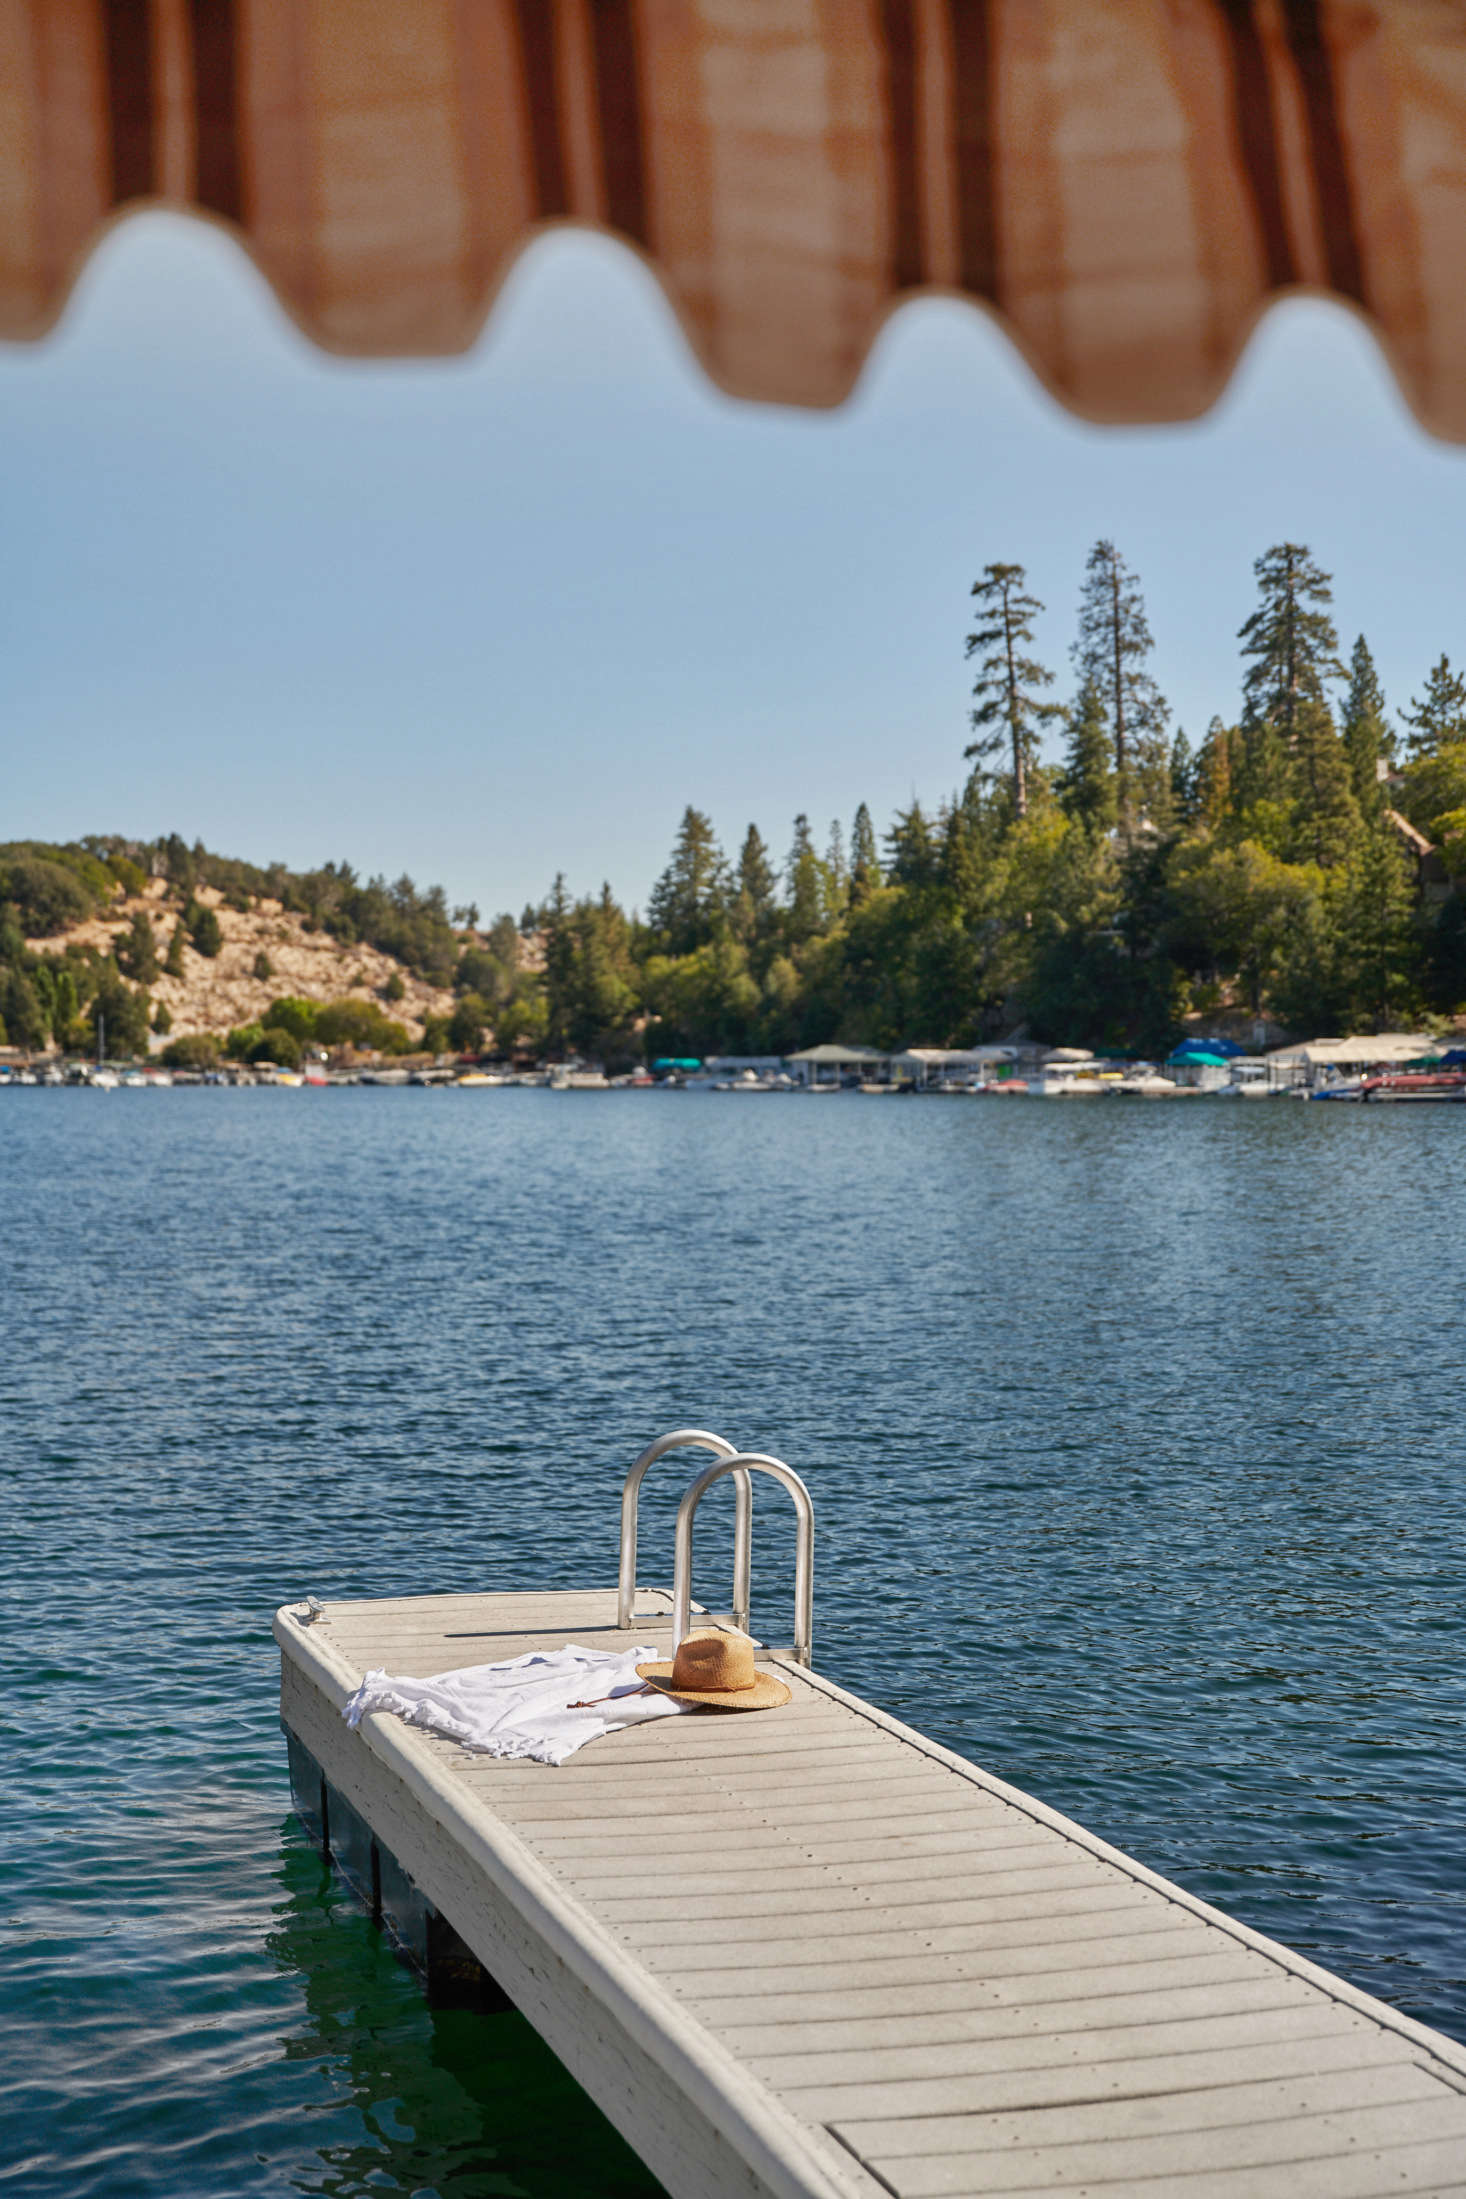 Last but not least, the lakeside dock, ready for lounging.